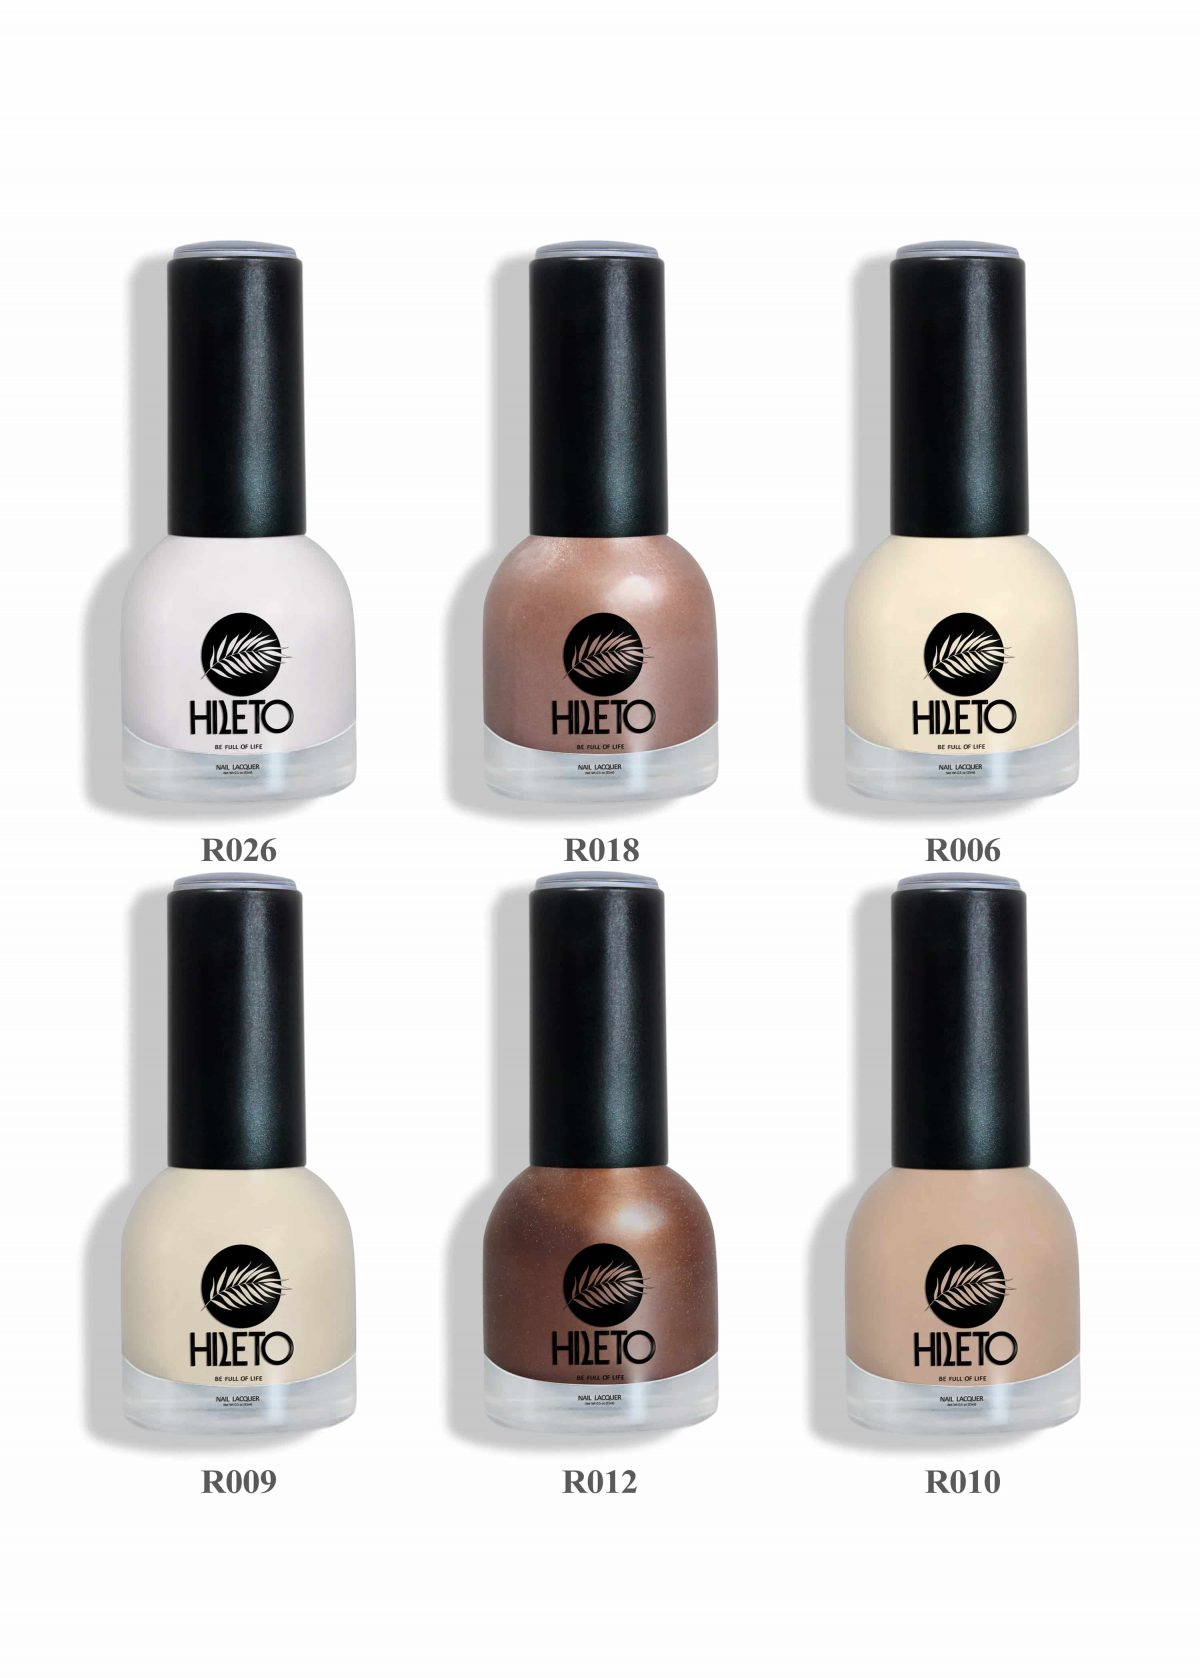 HiLeto Nude collection